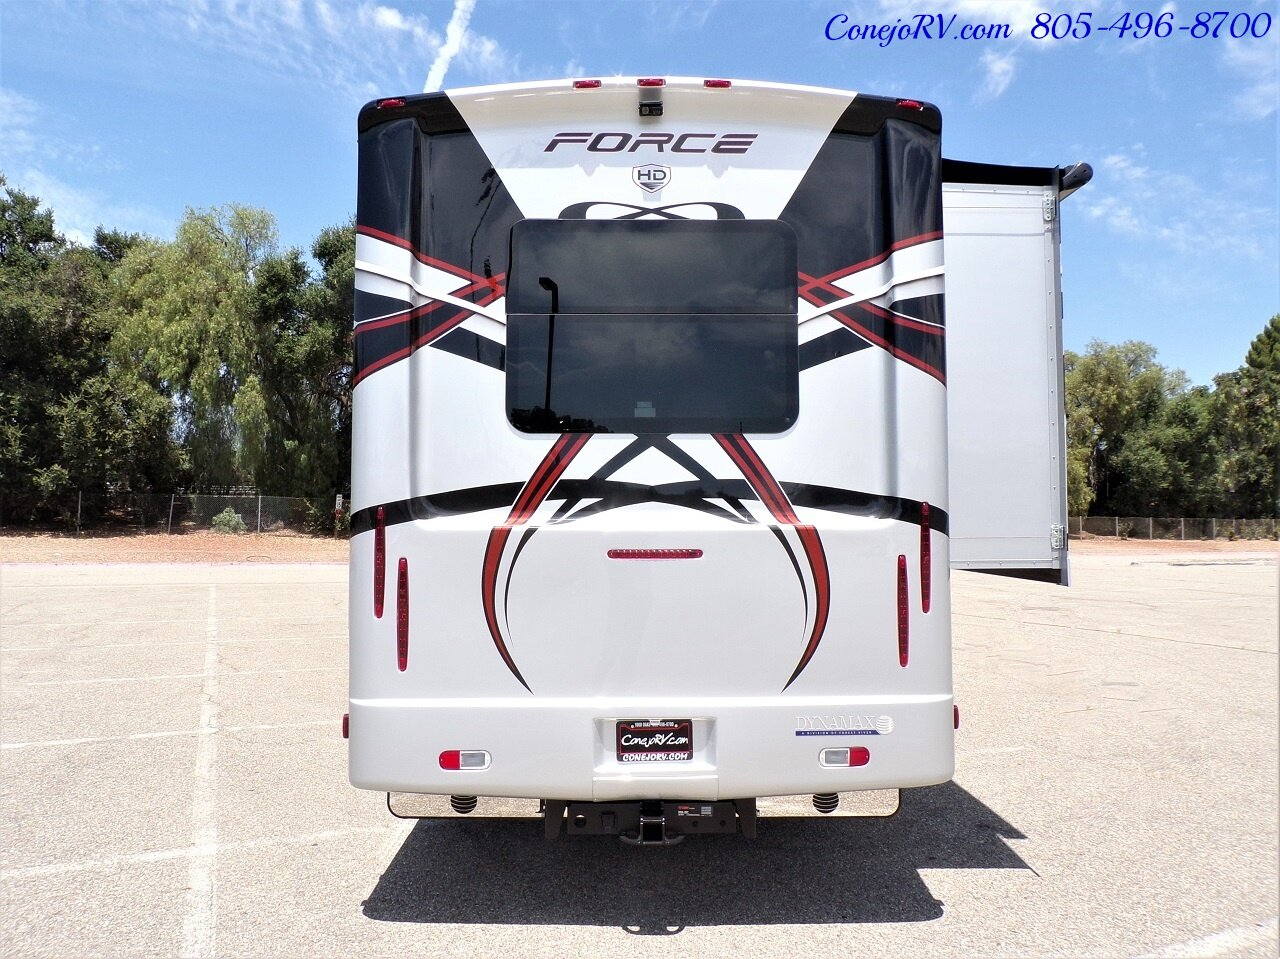 2020 Dynamax Force 37BH HD 2-Slide Big Freightliner M2 Chassis